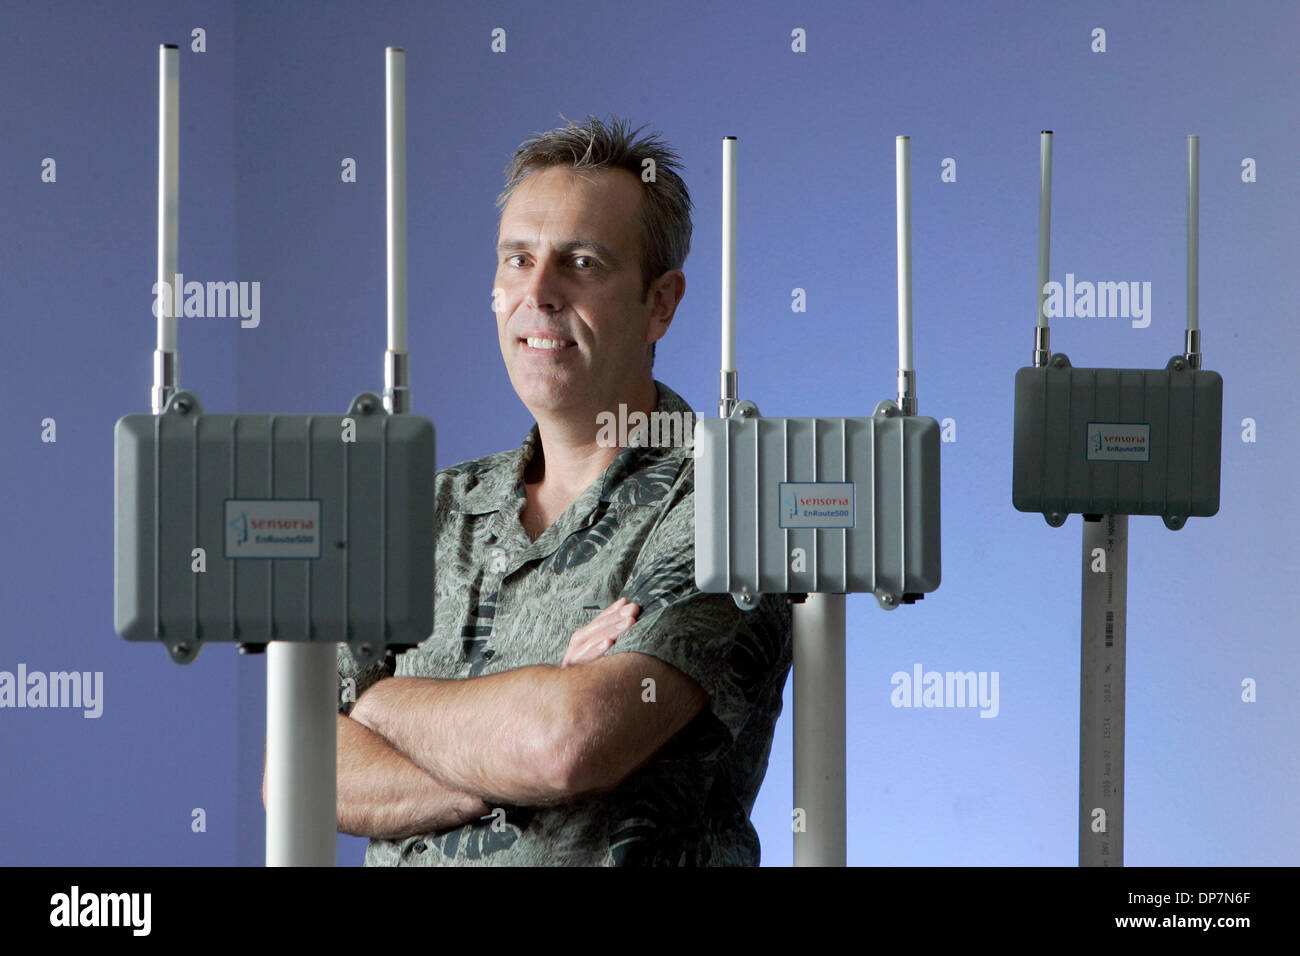 Aug 31, 2006; Rancho Bernardo, CA, USA; DAVE GELVIN is pictured with his 'EnRoute500' mesh router and WiFi access point. Gelvin is the President and CEO of Sensoria Corp. Sensoria Corp. makes wireless networks that are used not only by the military but also by universities and  municipalities that want to offer wireless, high-speed Internet access outdoors. Mandatory Credit: Photo  - Stock Image